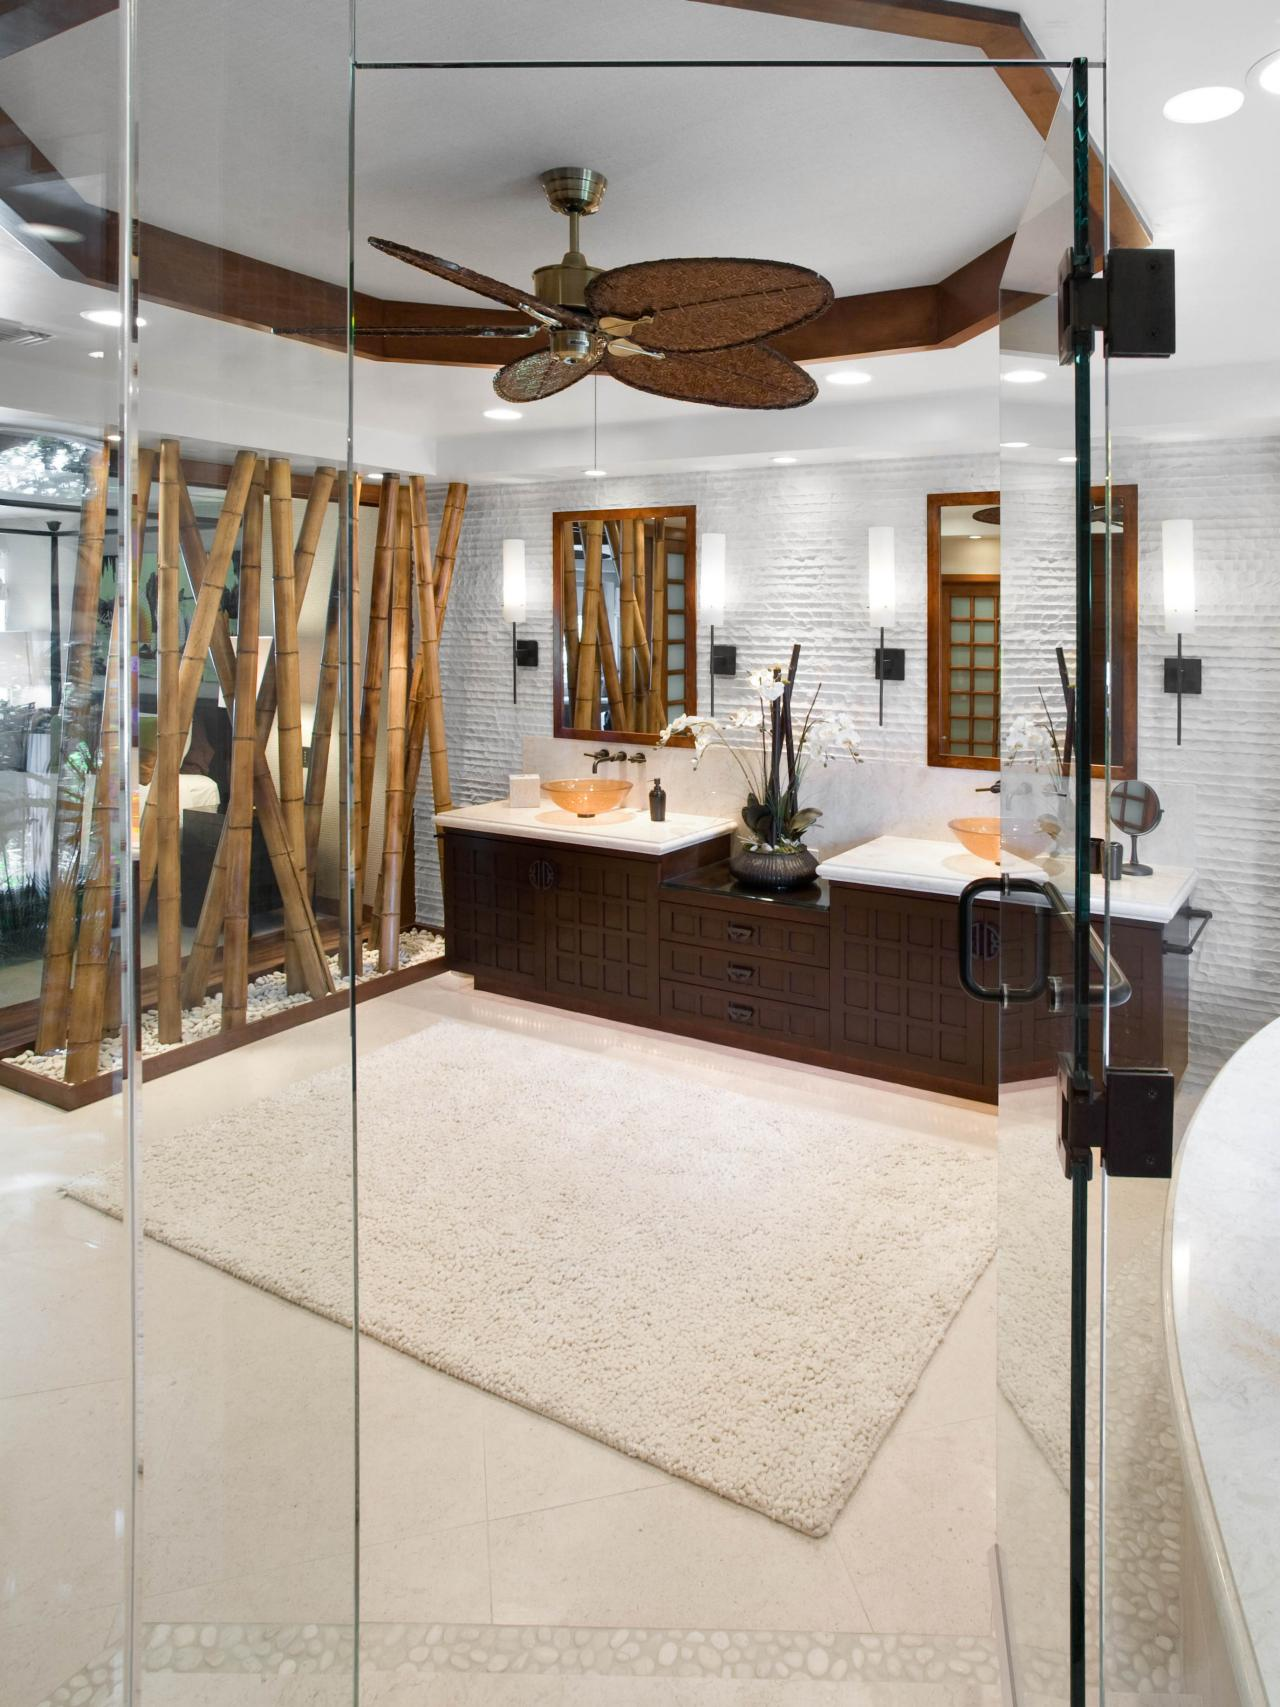 master bathroom vanity with vessel sinks and bamboo decor